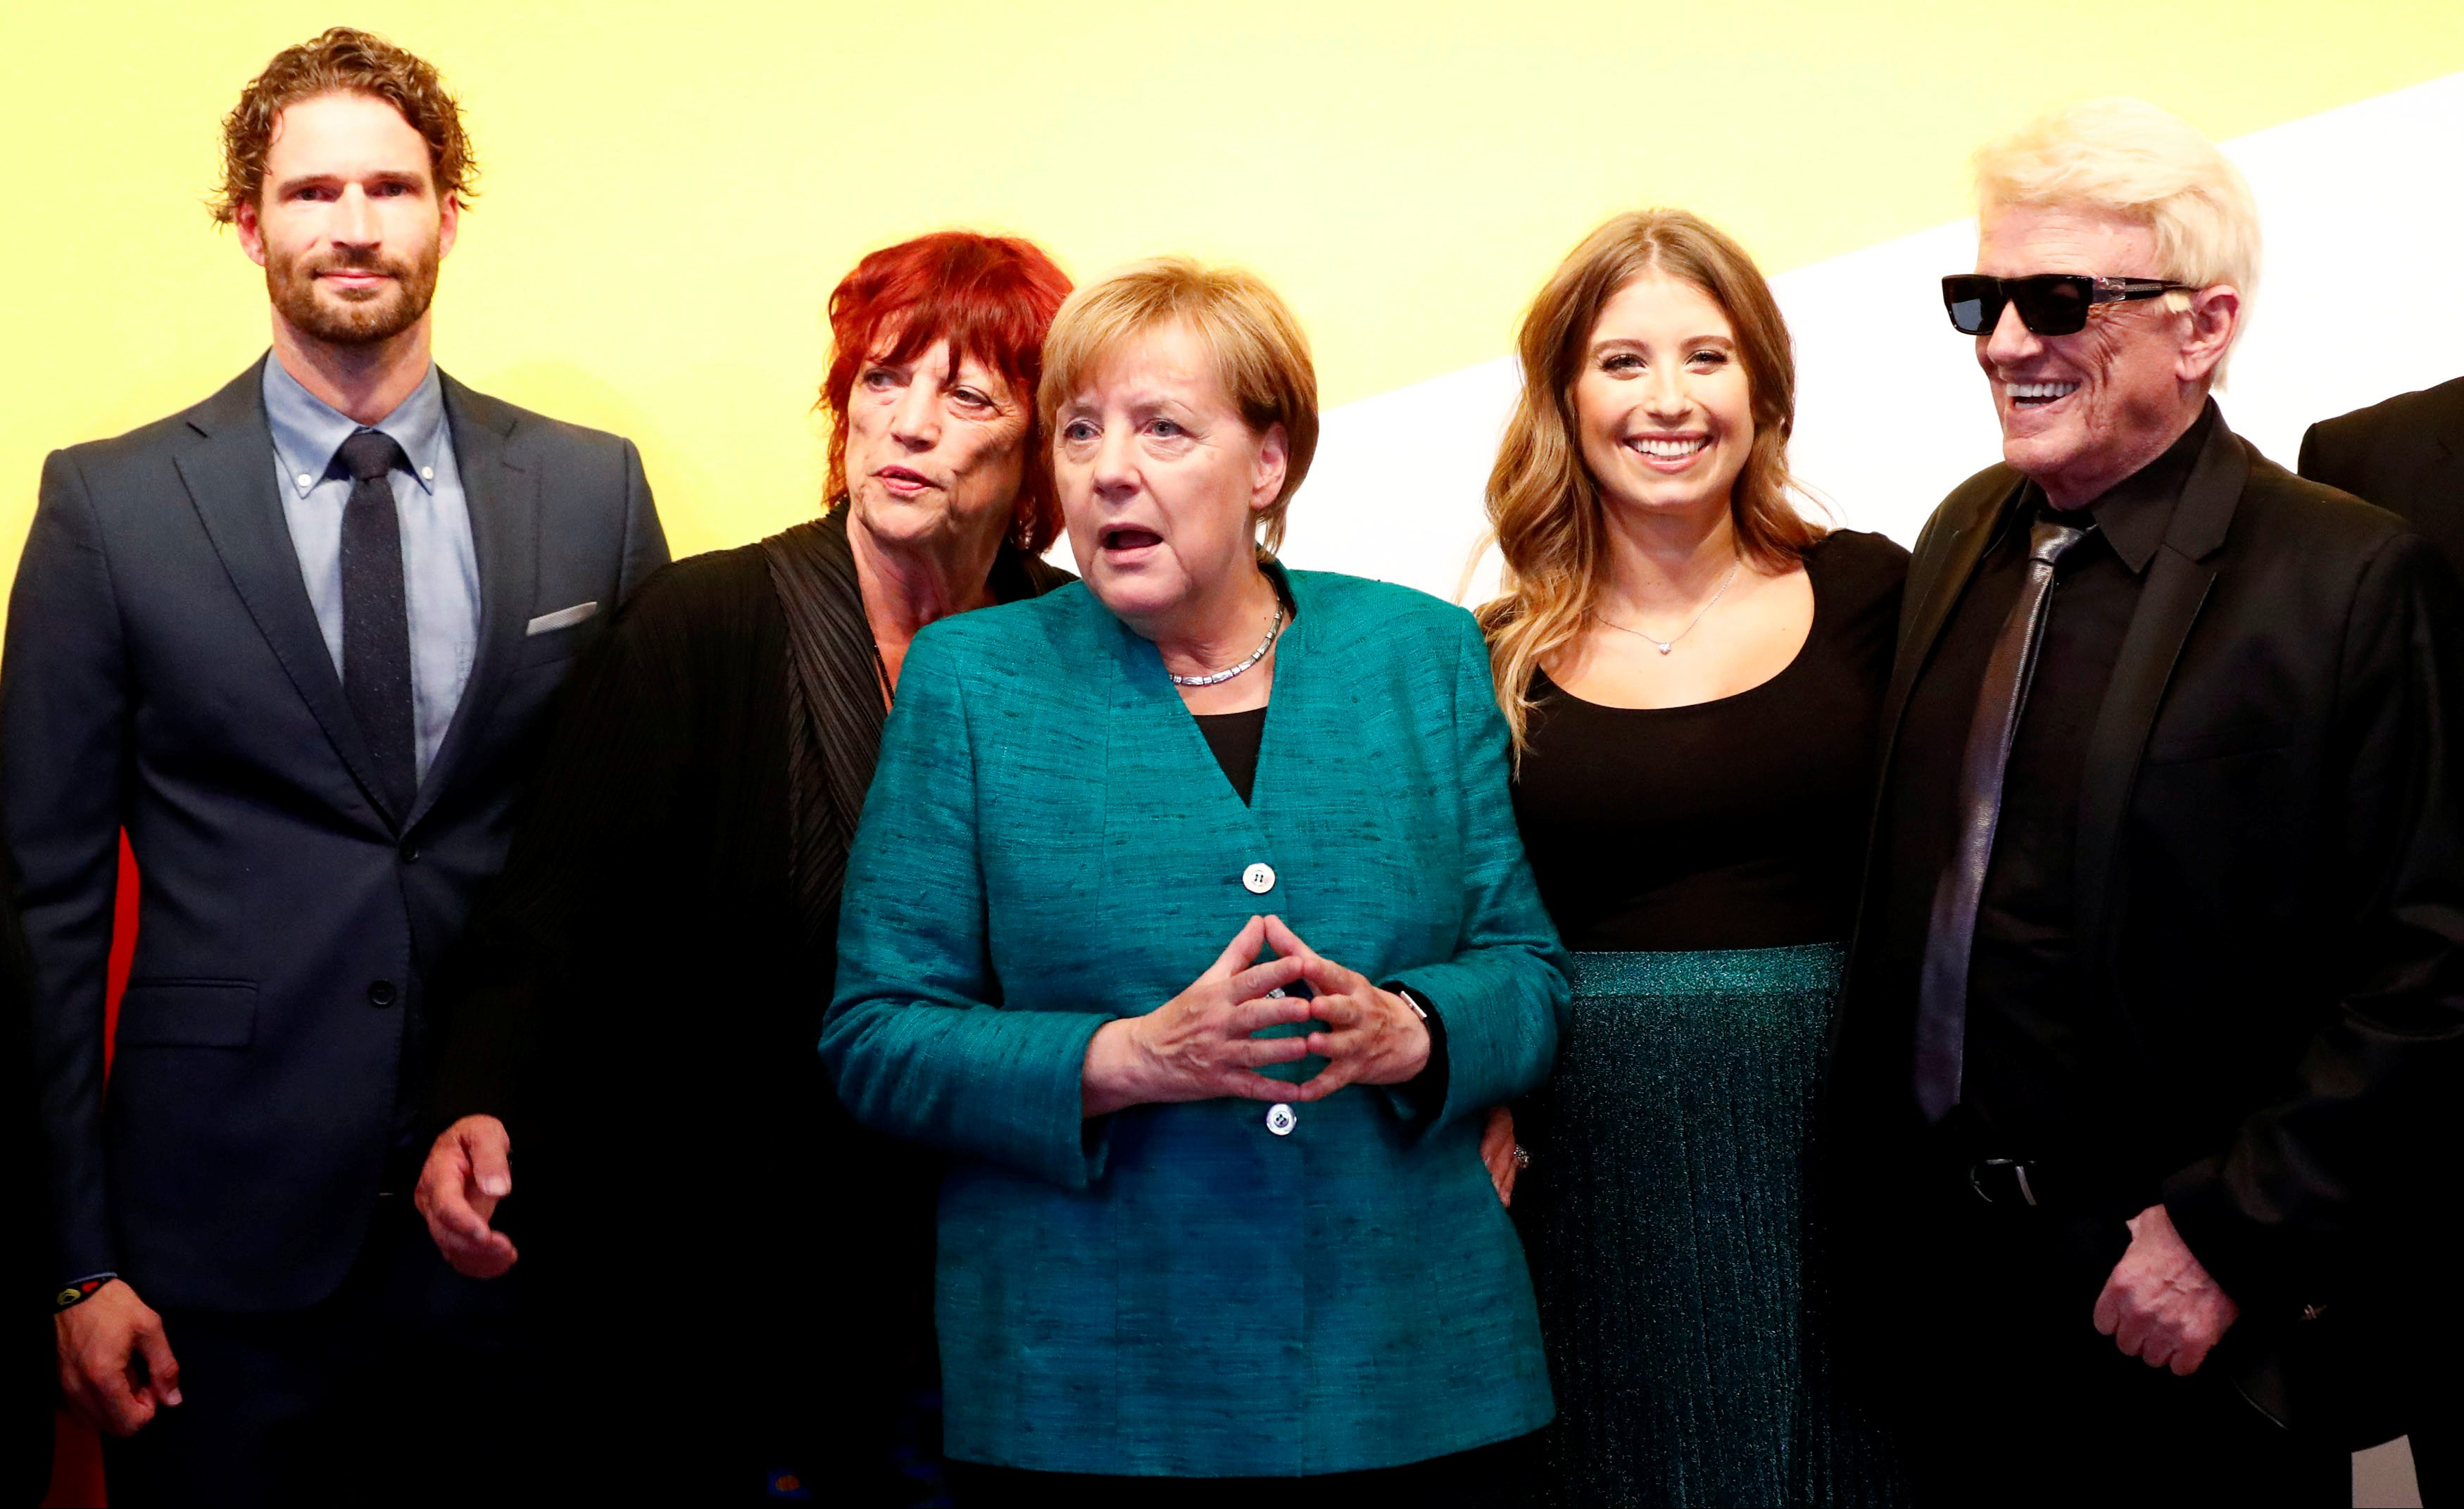 German Chancellor Angela Merkel poses with supporters during a reception at the CDU party election campaign meeting centre in Berlin